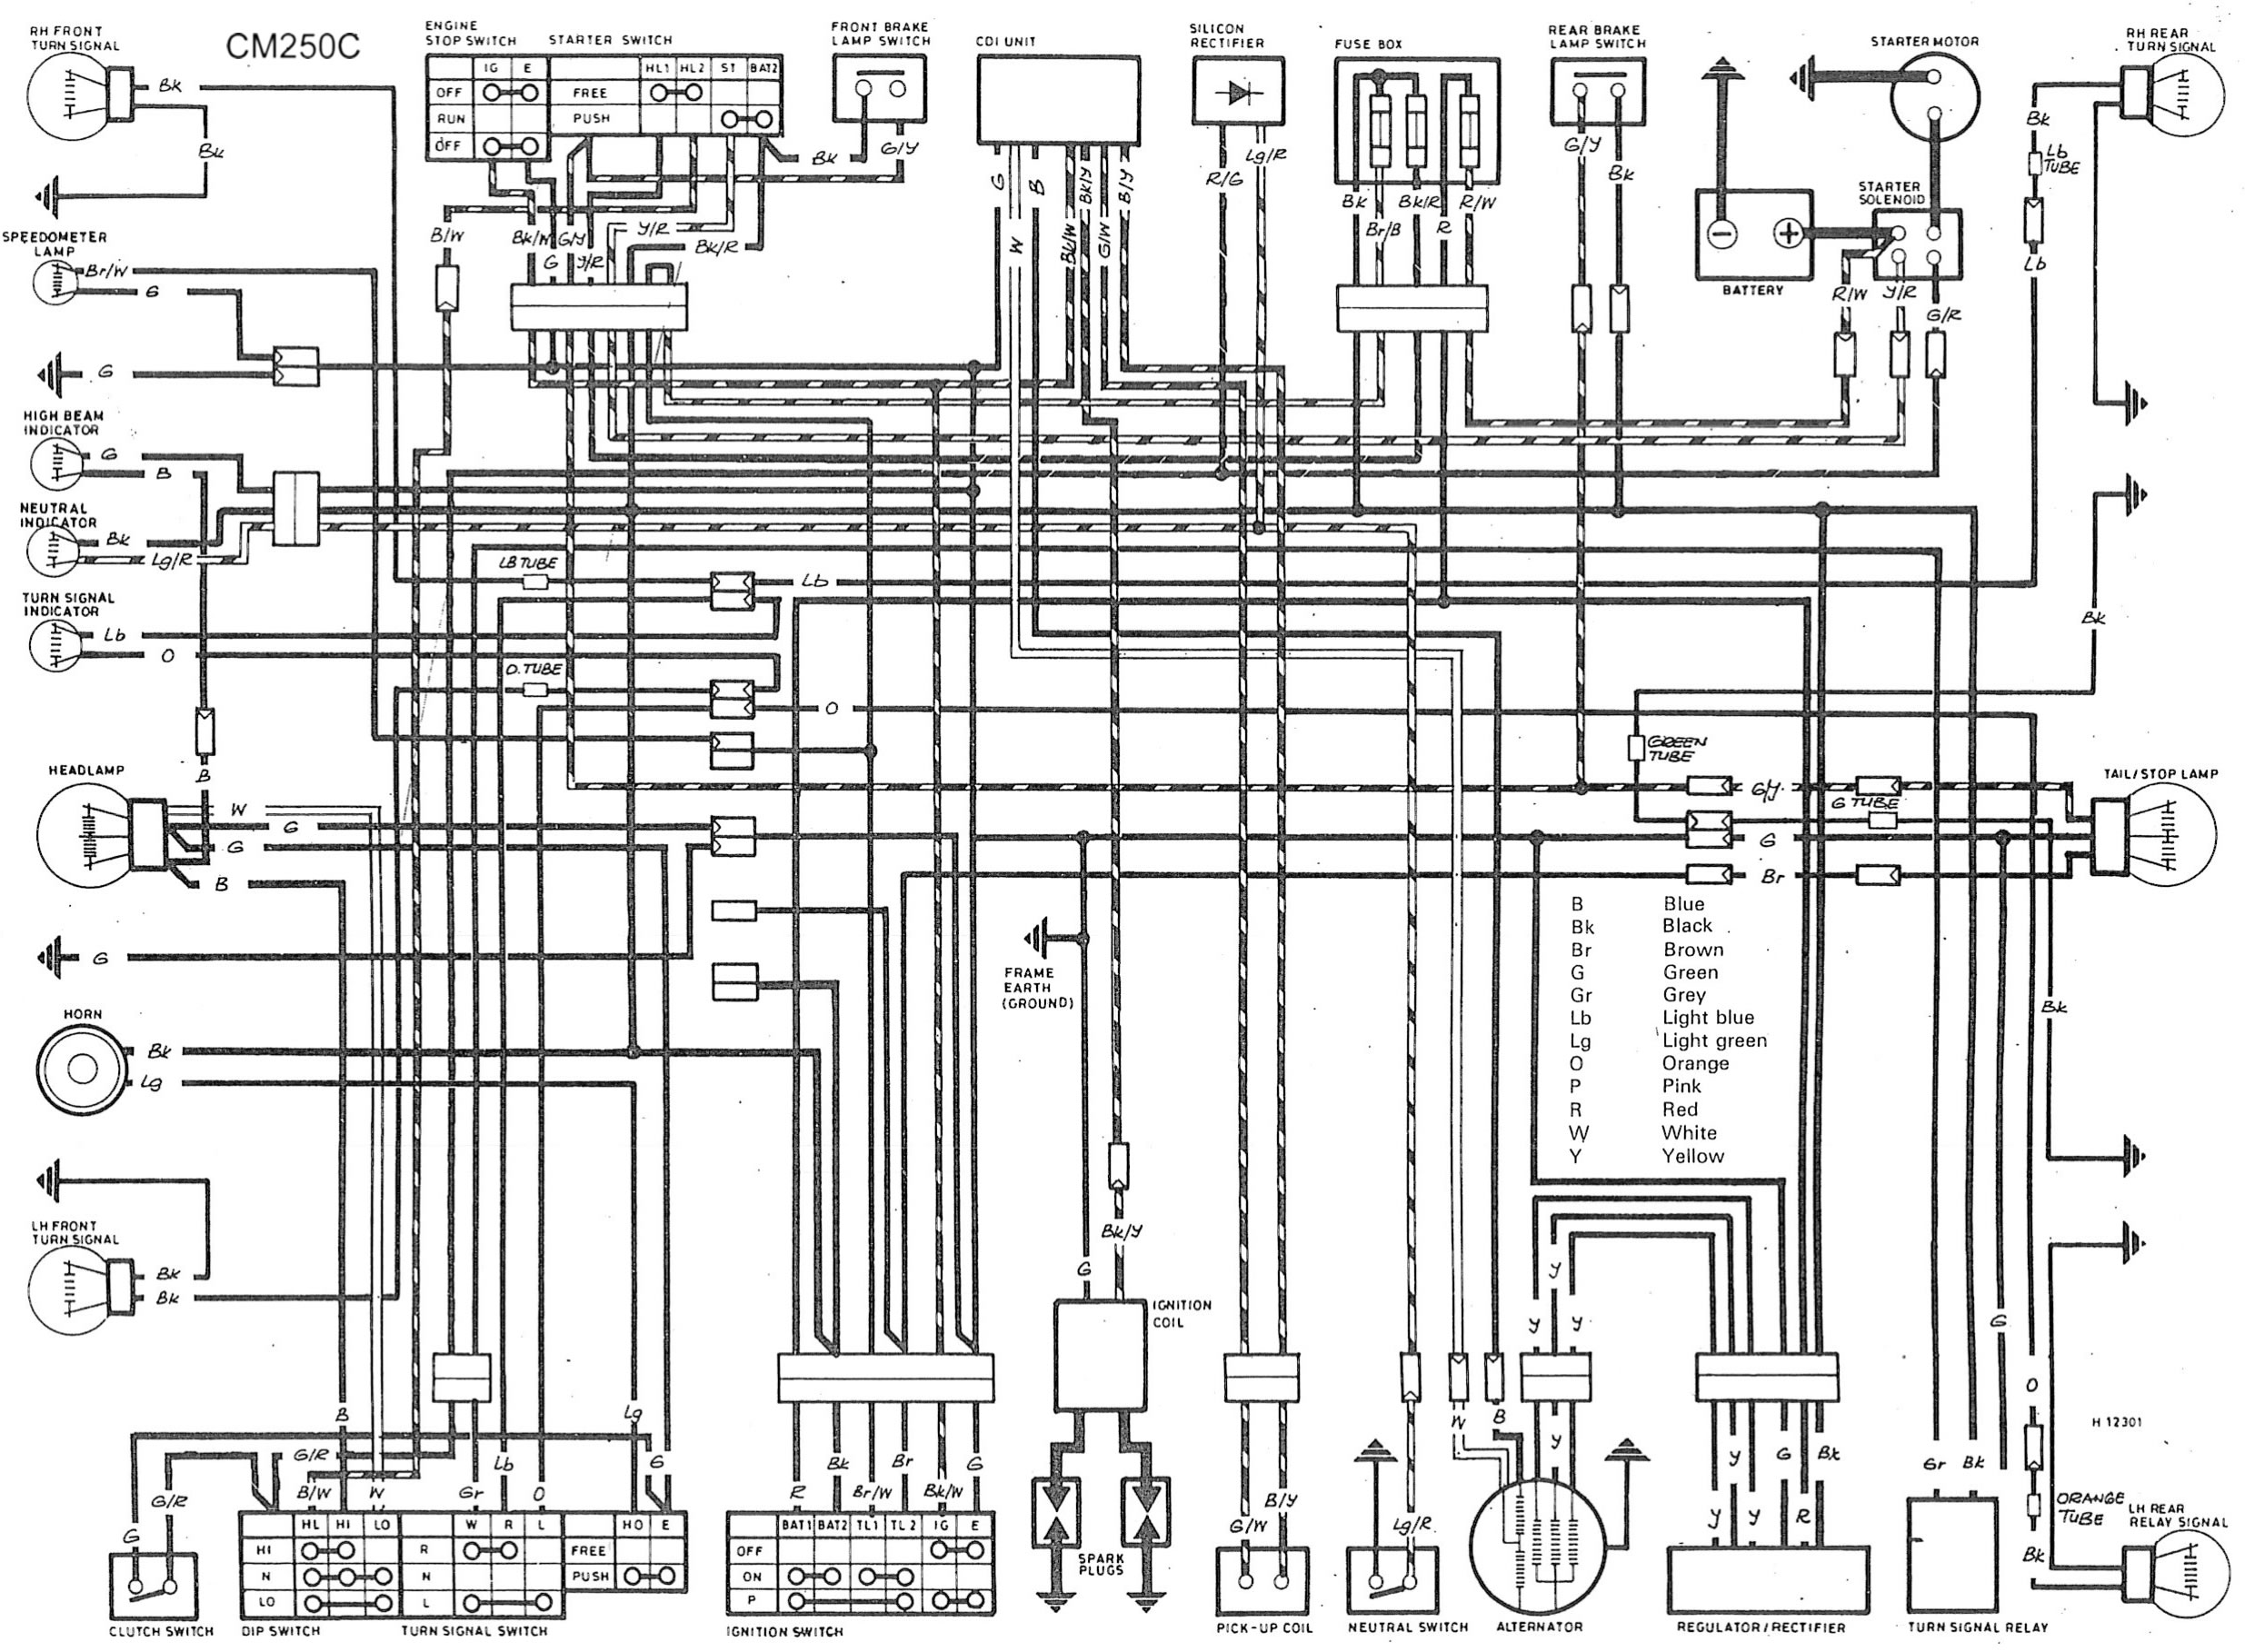 Schematic Diagram Honda Switch 2001 Hyundai Sonata Wiring Harness Srs Cm250 Enthusiast Diagrams U2022 Rh Rasalibre Co 1982 Cm 450e Schematics Of Tmx 155